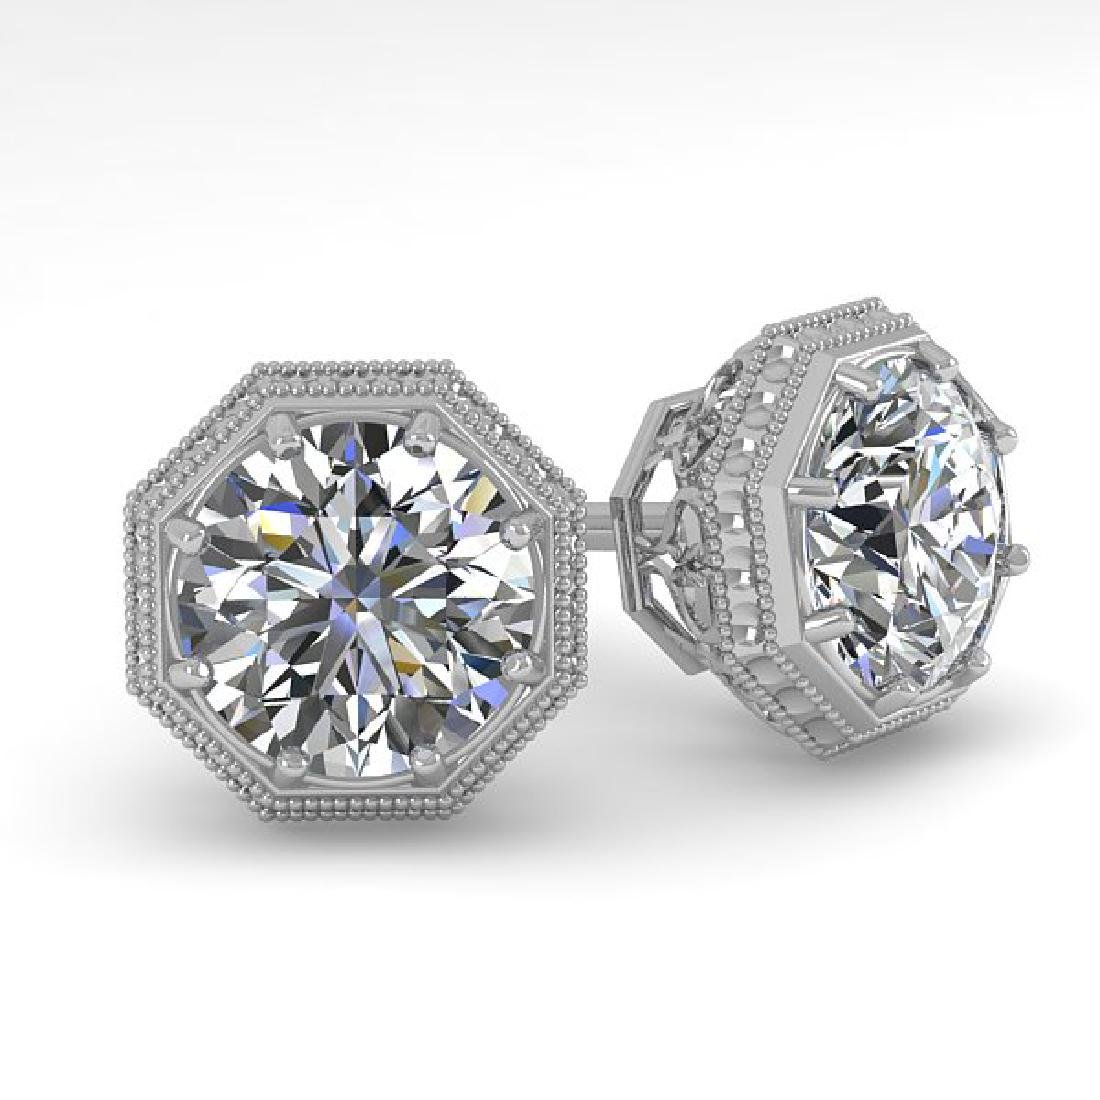 1.05 CTW Certified VS/SI Diamond Stud Earrings 14K